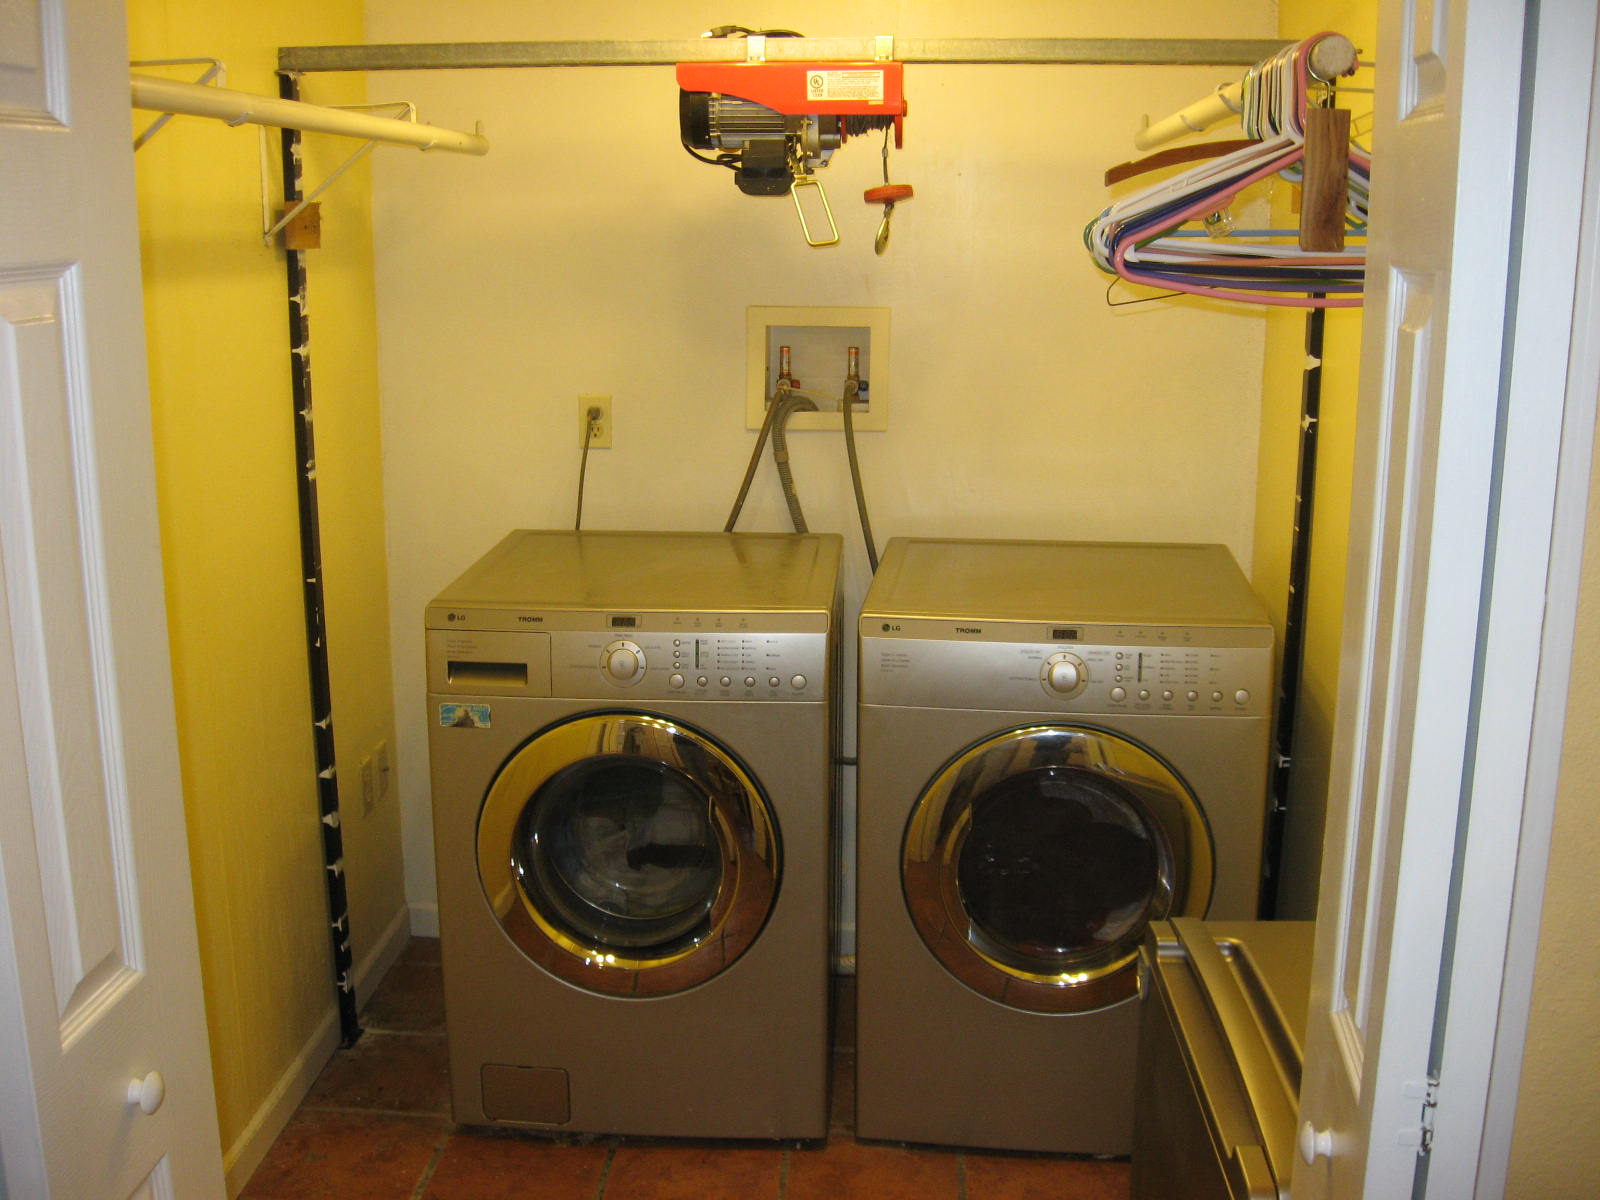 Home N Auto Painting And Installing Used Lg Washer And